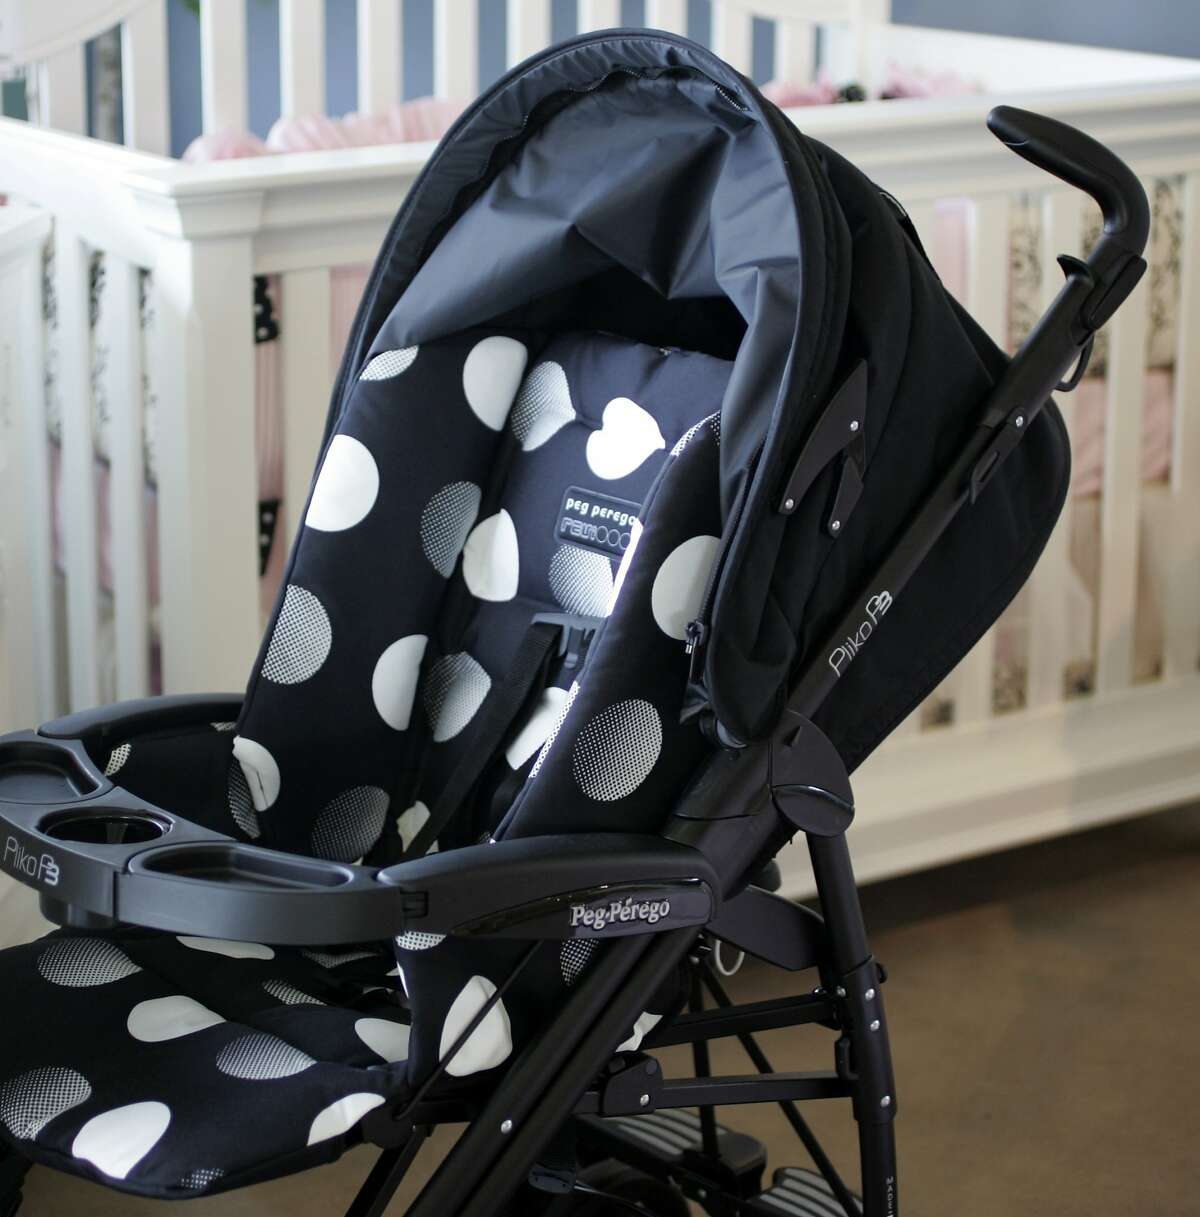 juliecooper Some mommies care only about style. The polka-dot fabric on this Peg Perego stroller at Kids' Rooms makes it one of the most popular strollers there. (Chris Oberholtz/Kansas City Star/MCT)